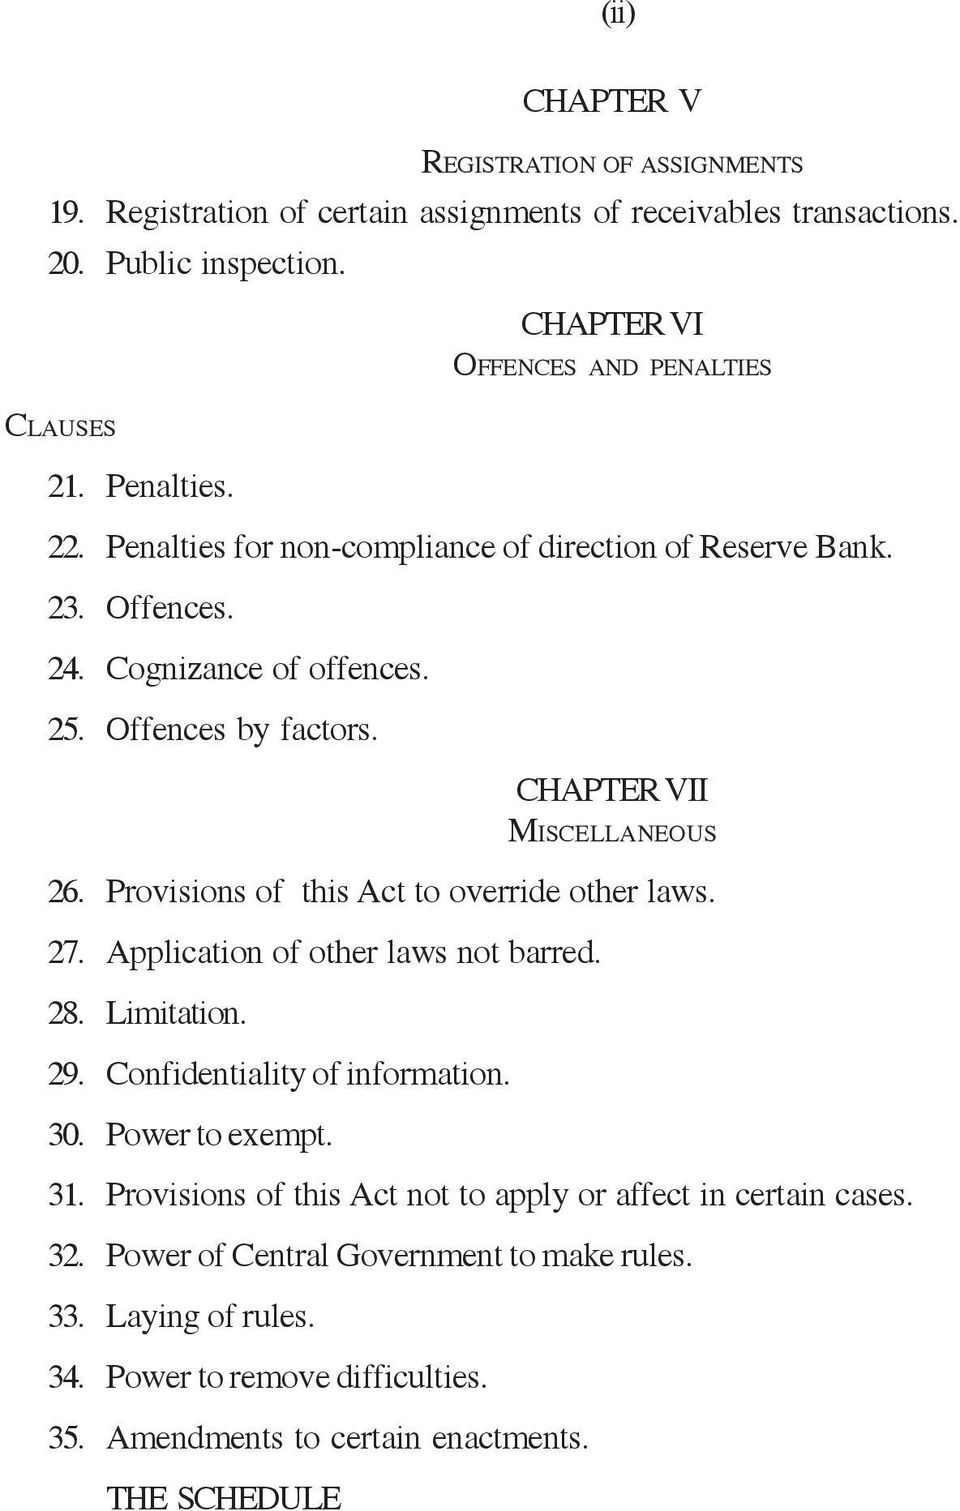 Provisions of this Act to override other laws. 27. Application of other laws not barred. 28. Limitation. 29. Confidentiality of information. 30. Power to exempt. 31.